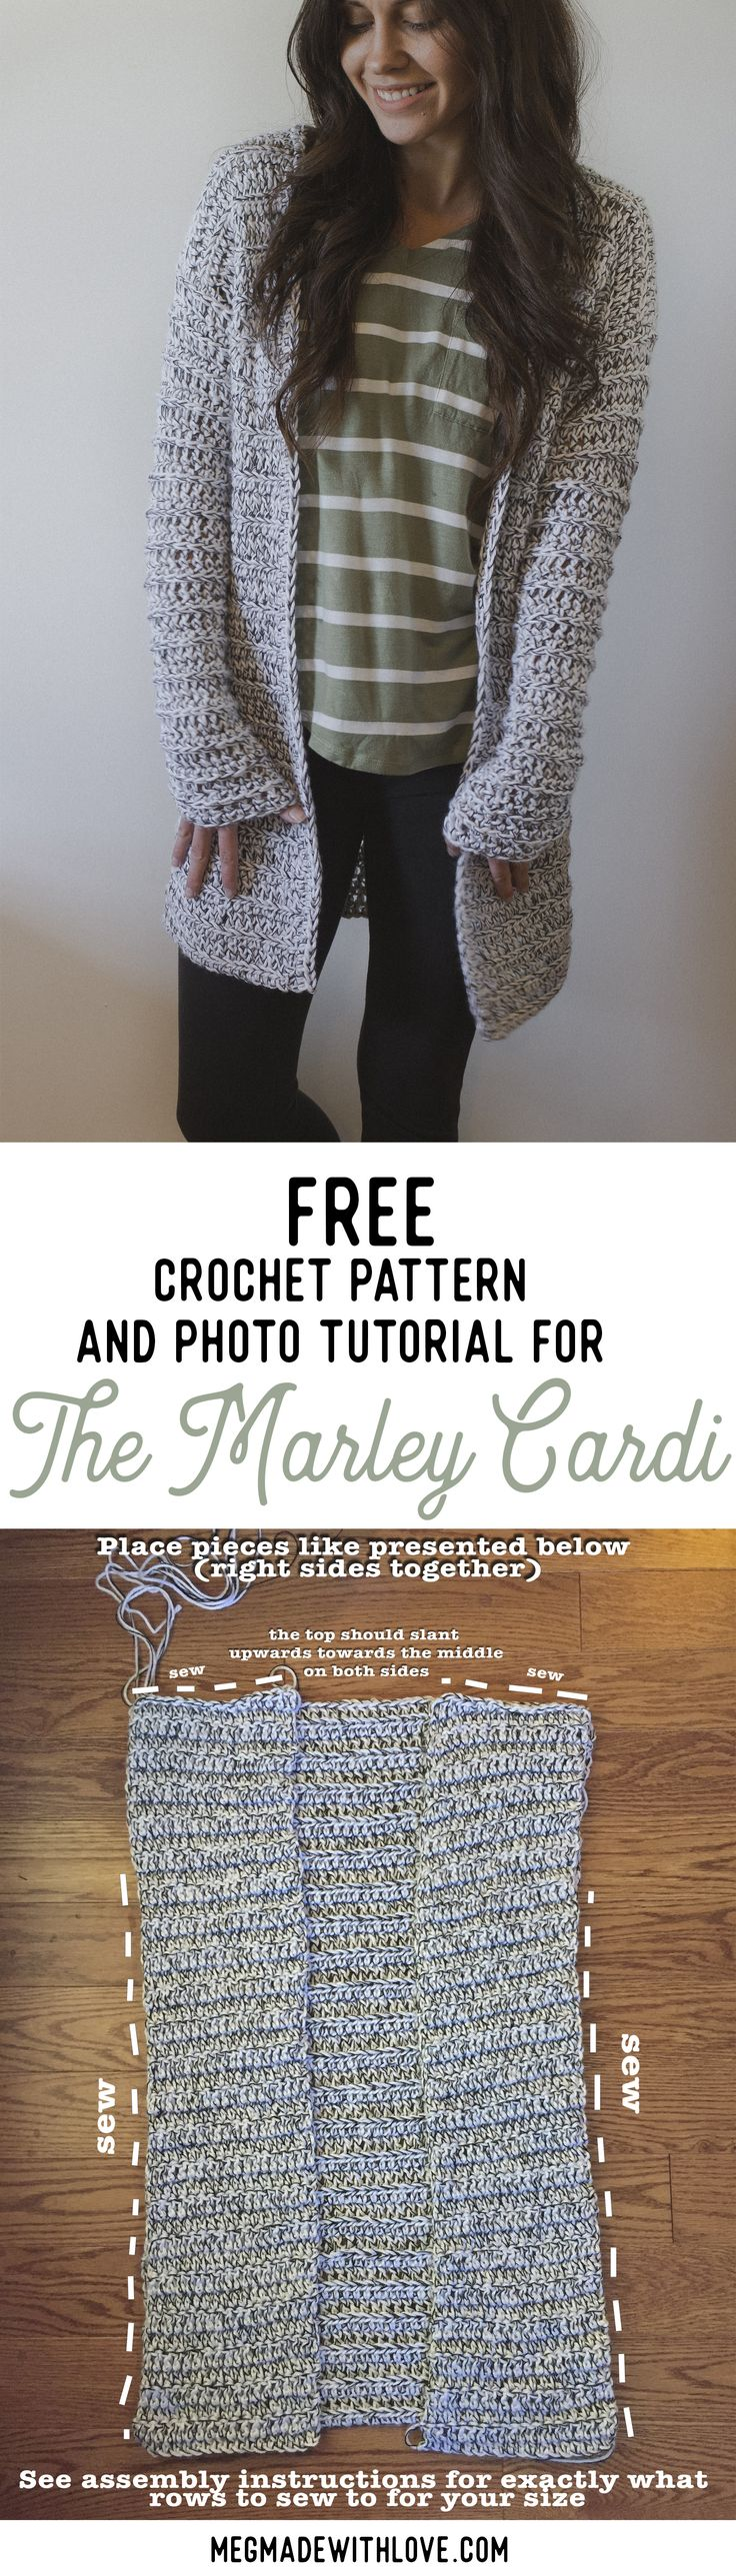 "Free Crochet Pattern for the Marley Cardi - A Long & Chunky Cardigan Sweater November 22, 2017/ Megan Shaimes <img src=""https://static1.squarespace.com/static/5885008d1e5b6c186557de4e/t/5a14fb34f9619afa6a8d891b/1511324505158/Free+Pattern+for+the+Marley+Cardi"" alt=""Free Pattern for the Marley Cardi"" />"